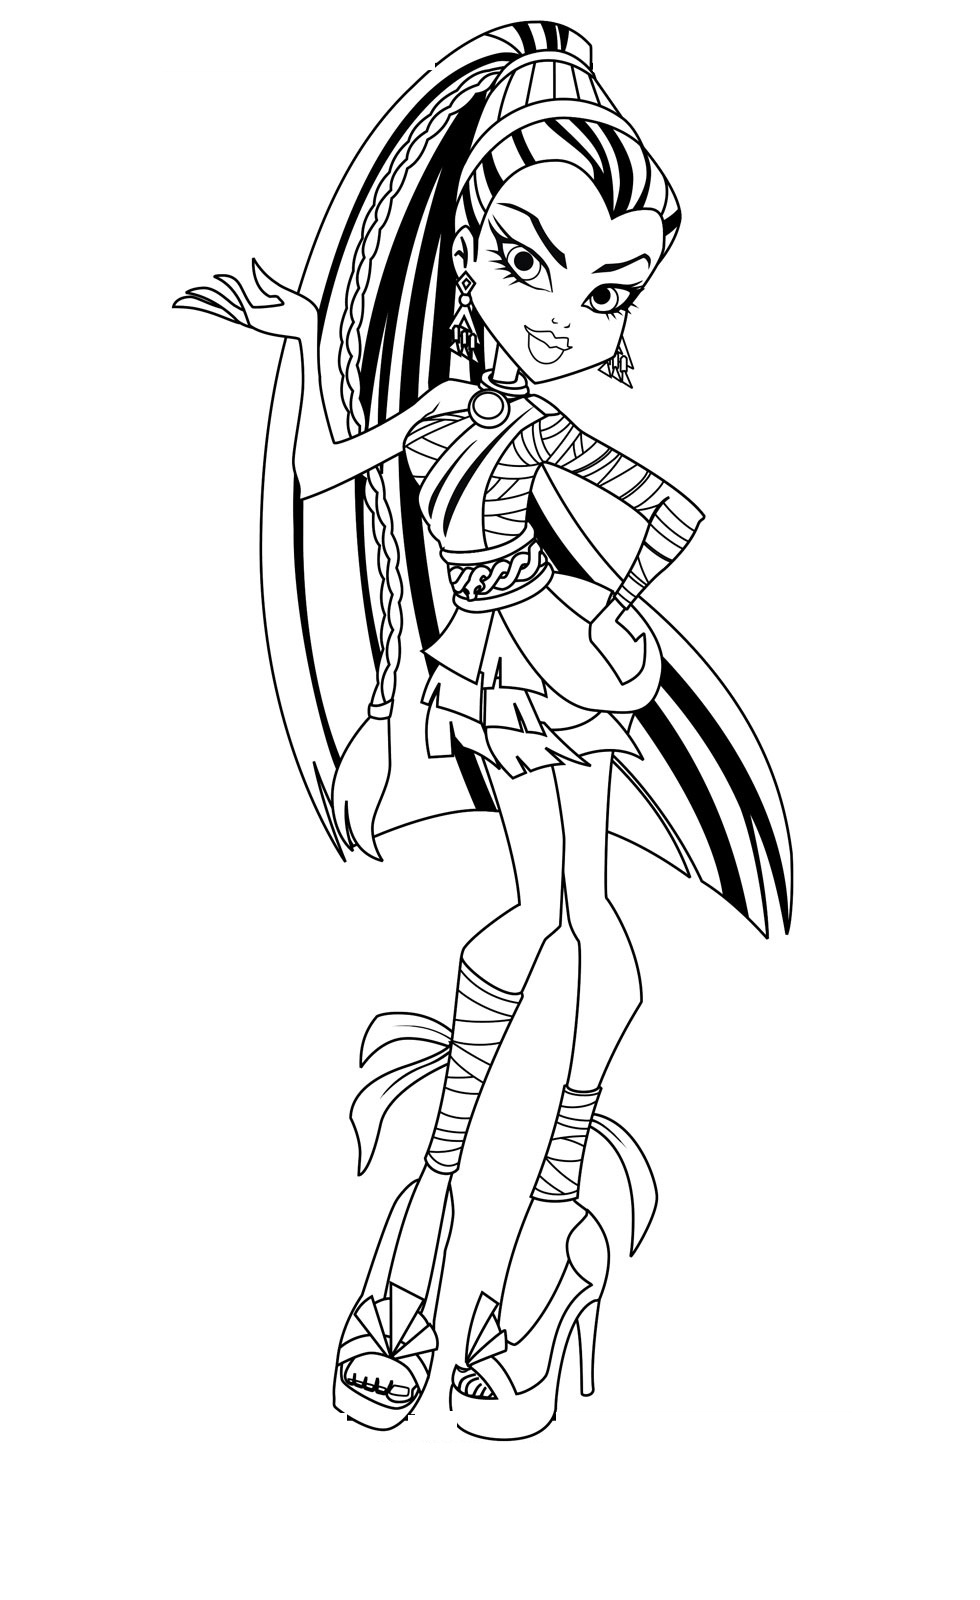 Free Printable Monster High Coloring Pages for Kids Download Of Monster High Baby Coloring Pages 012 to Coloring Pages Collection